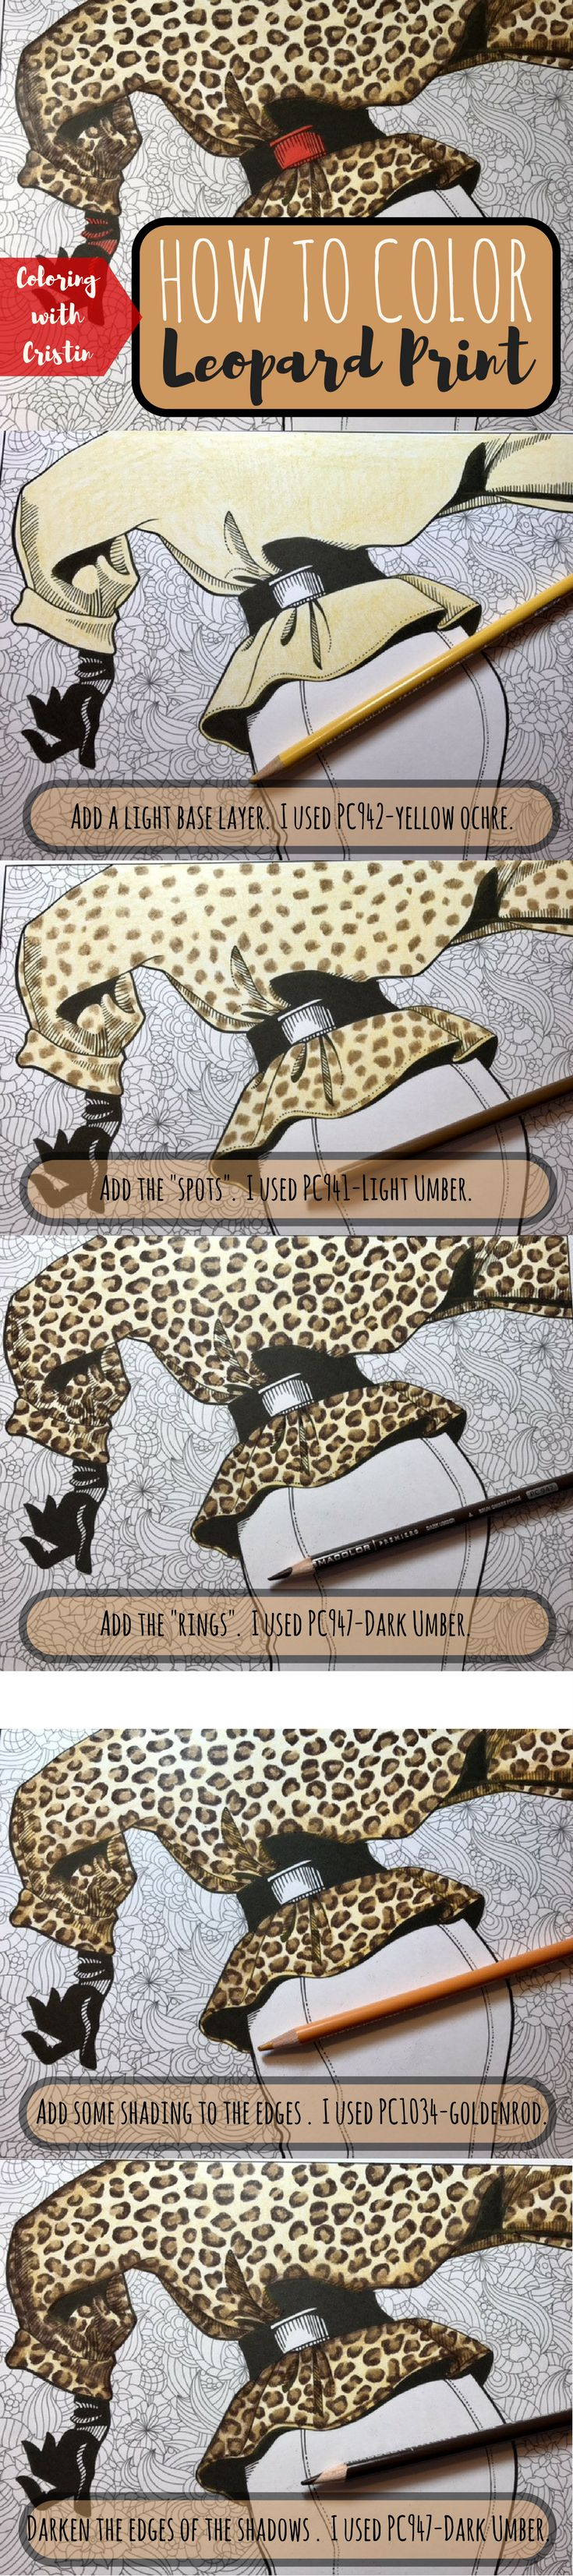 Swear word coloring book sarah bigwood - 5 Easy Steps To Coloring A Kickass Leopard Print A Coloring Tutorial By Cristinapril